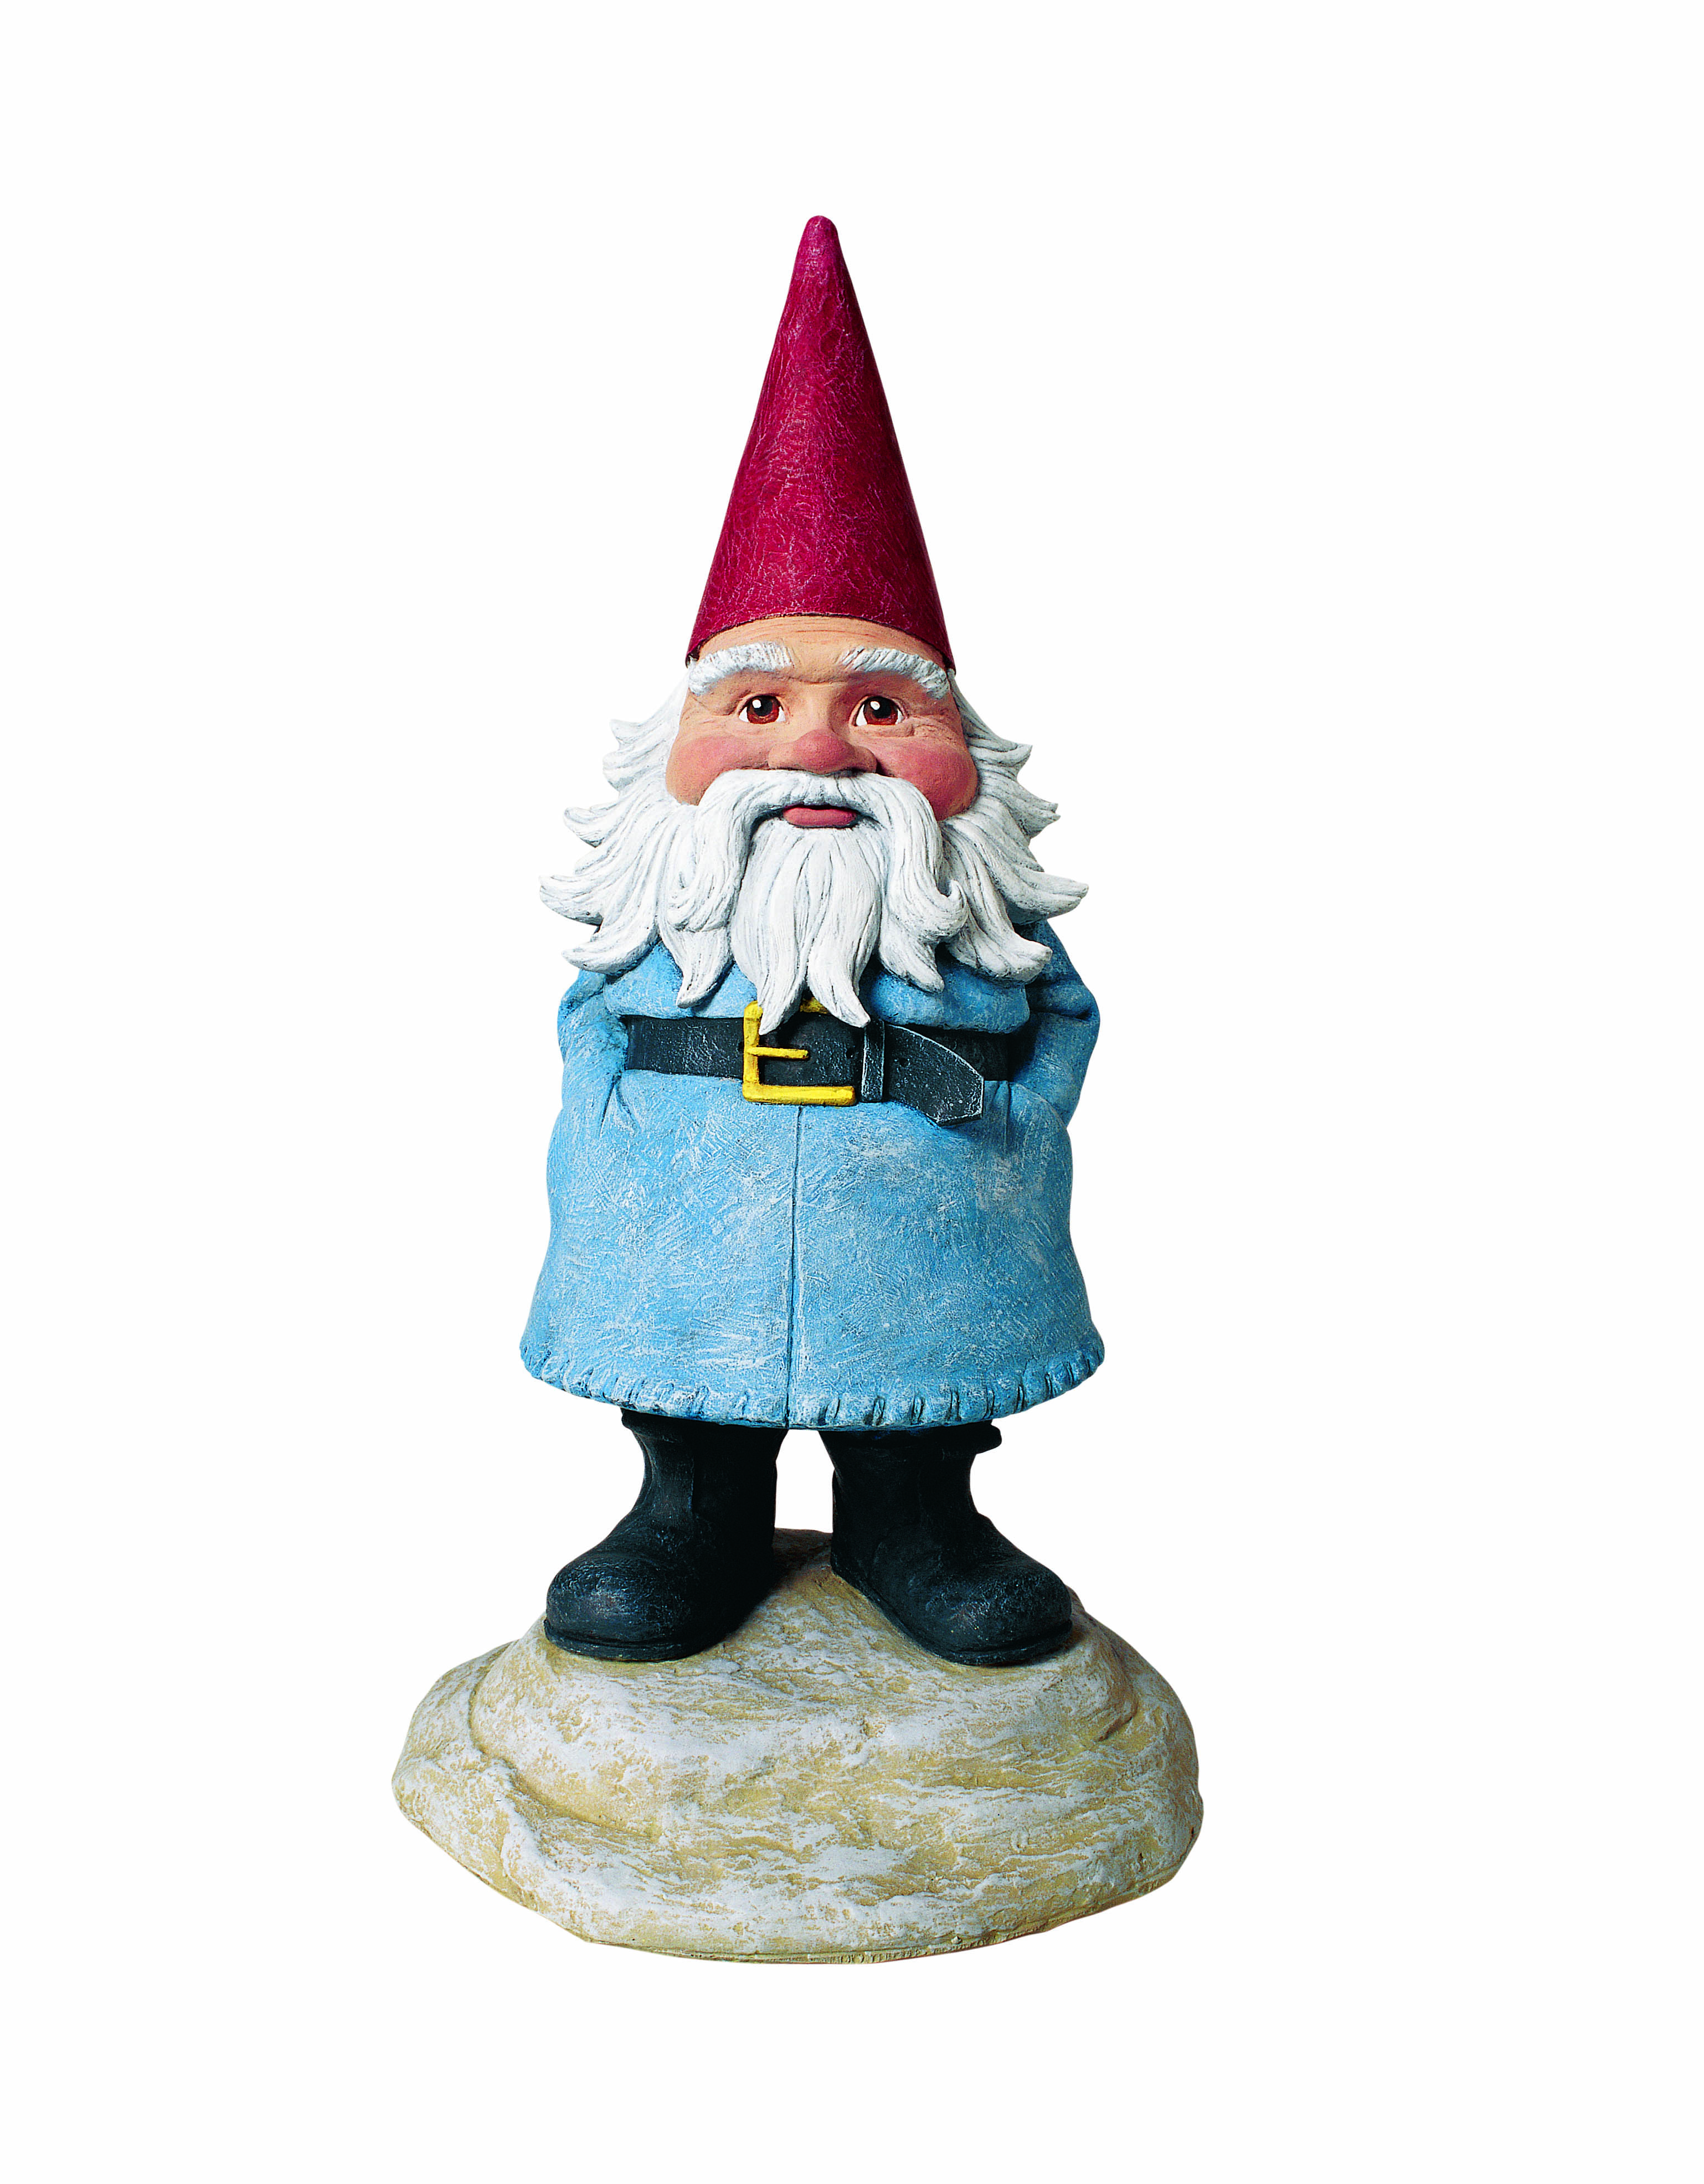 travelocitys roaming gnome vies for top honor in 2008